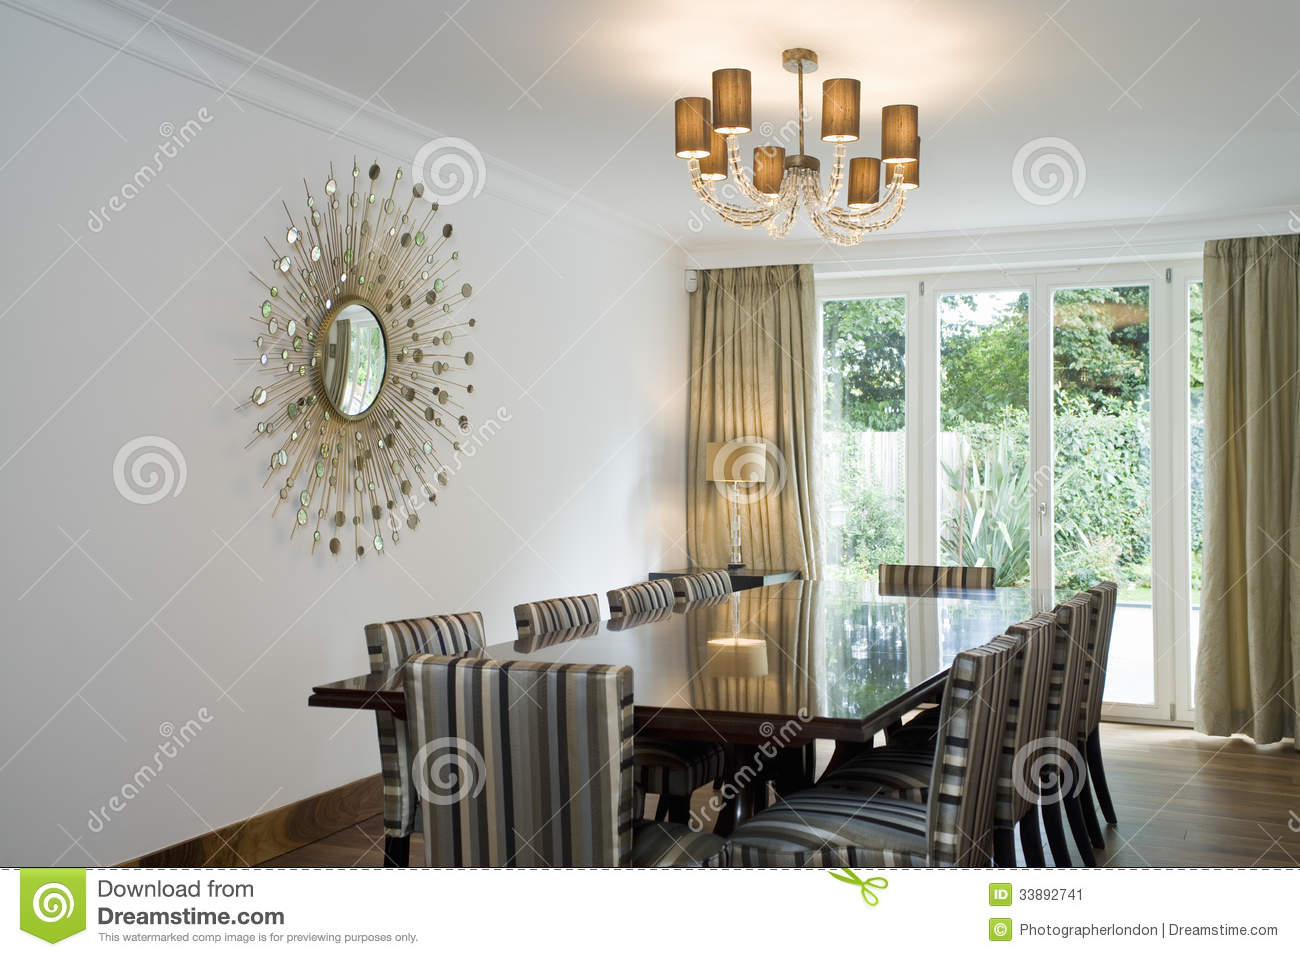 Chandelier Over Dining Table And Art On Wall Stock Image Of Simplicity